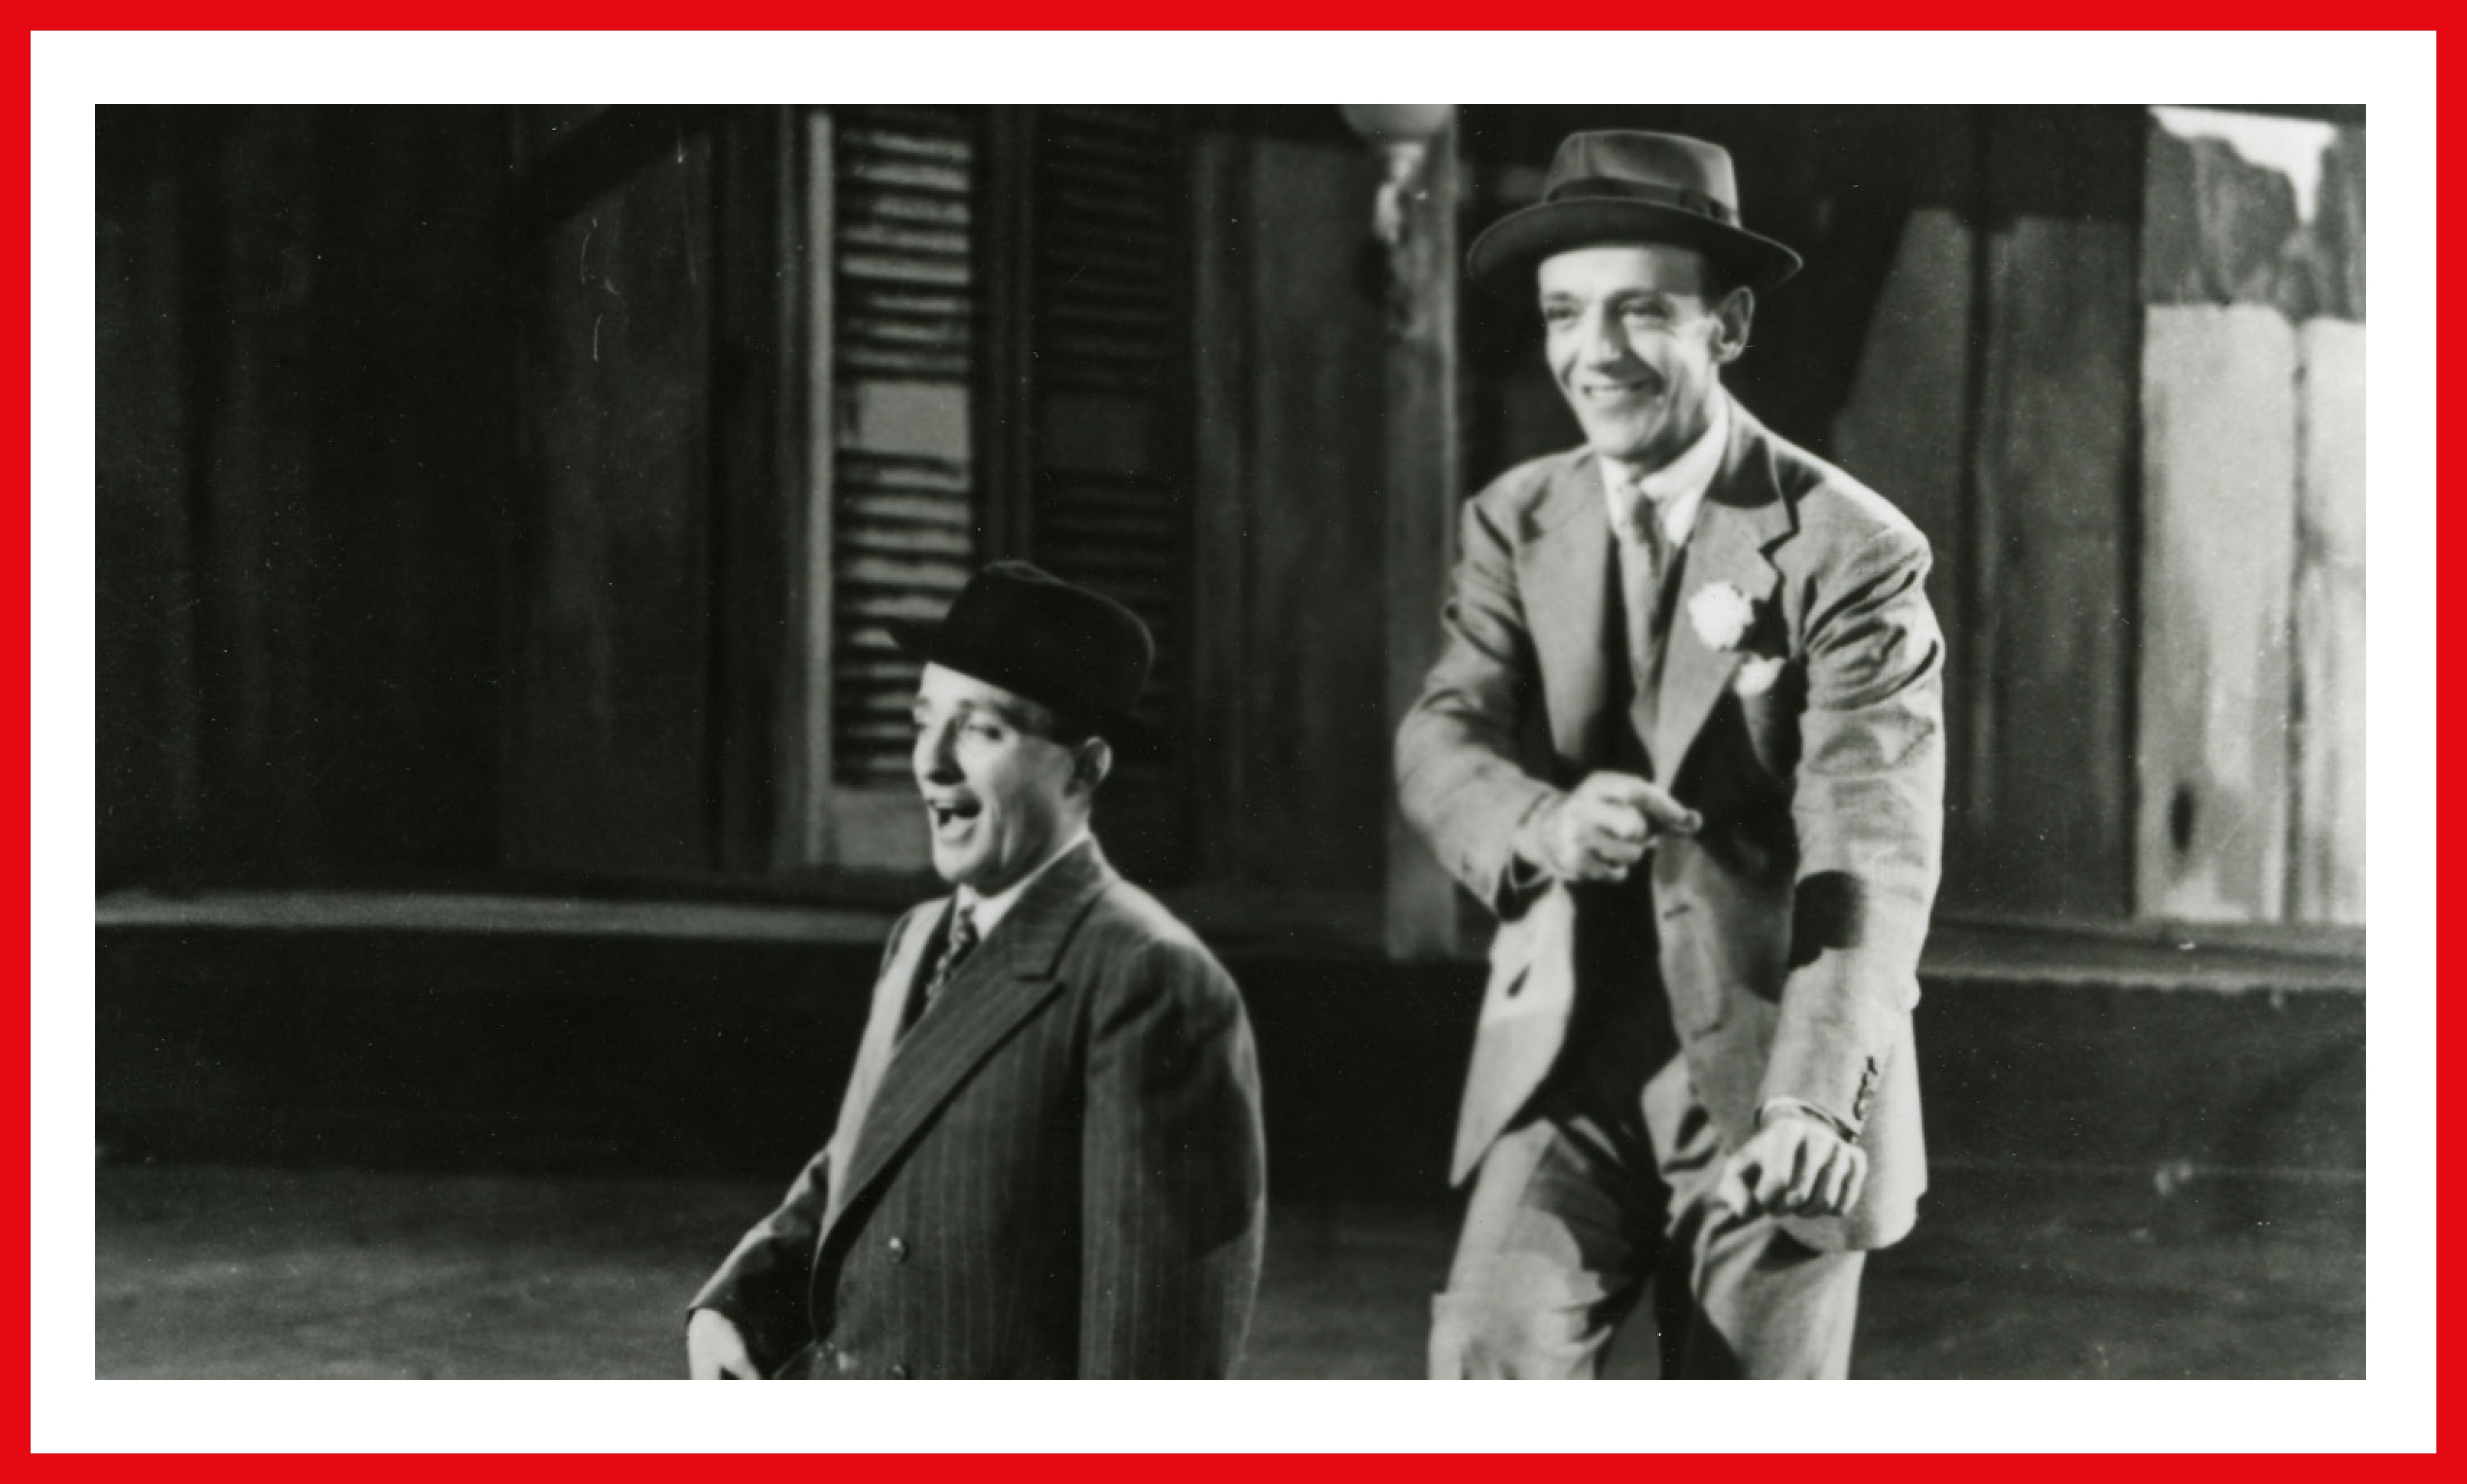 Crosby and Astaire ready to dance.